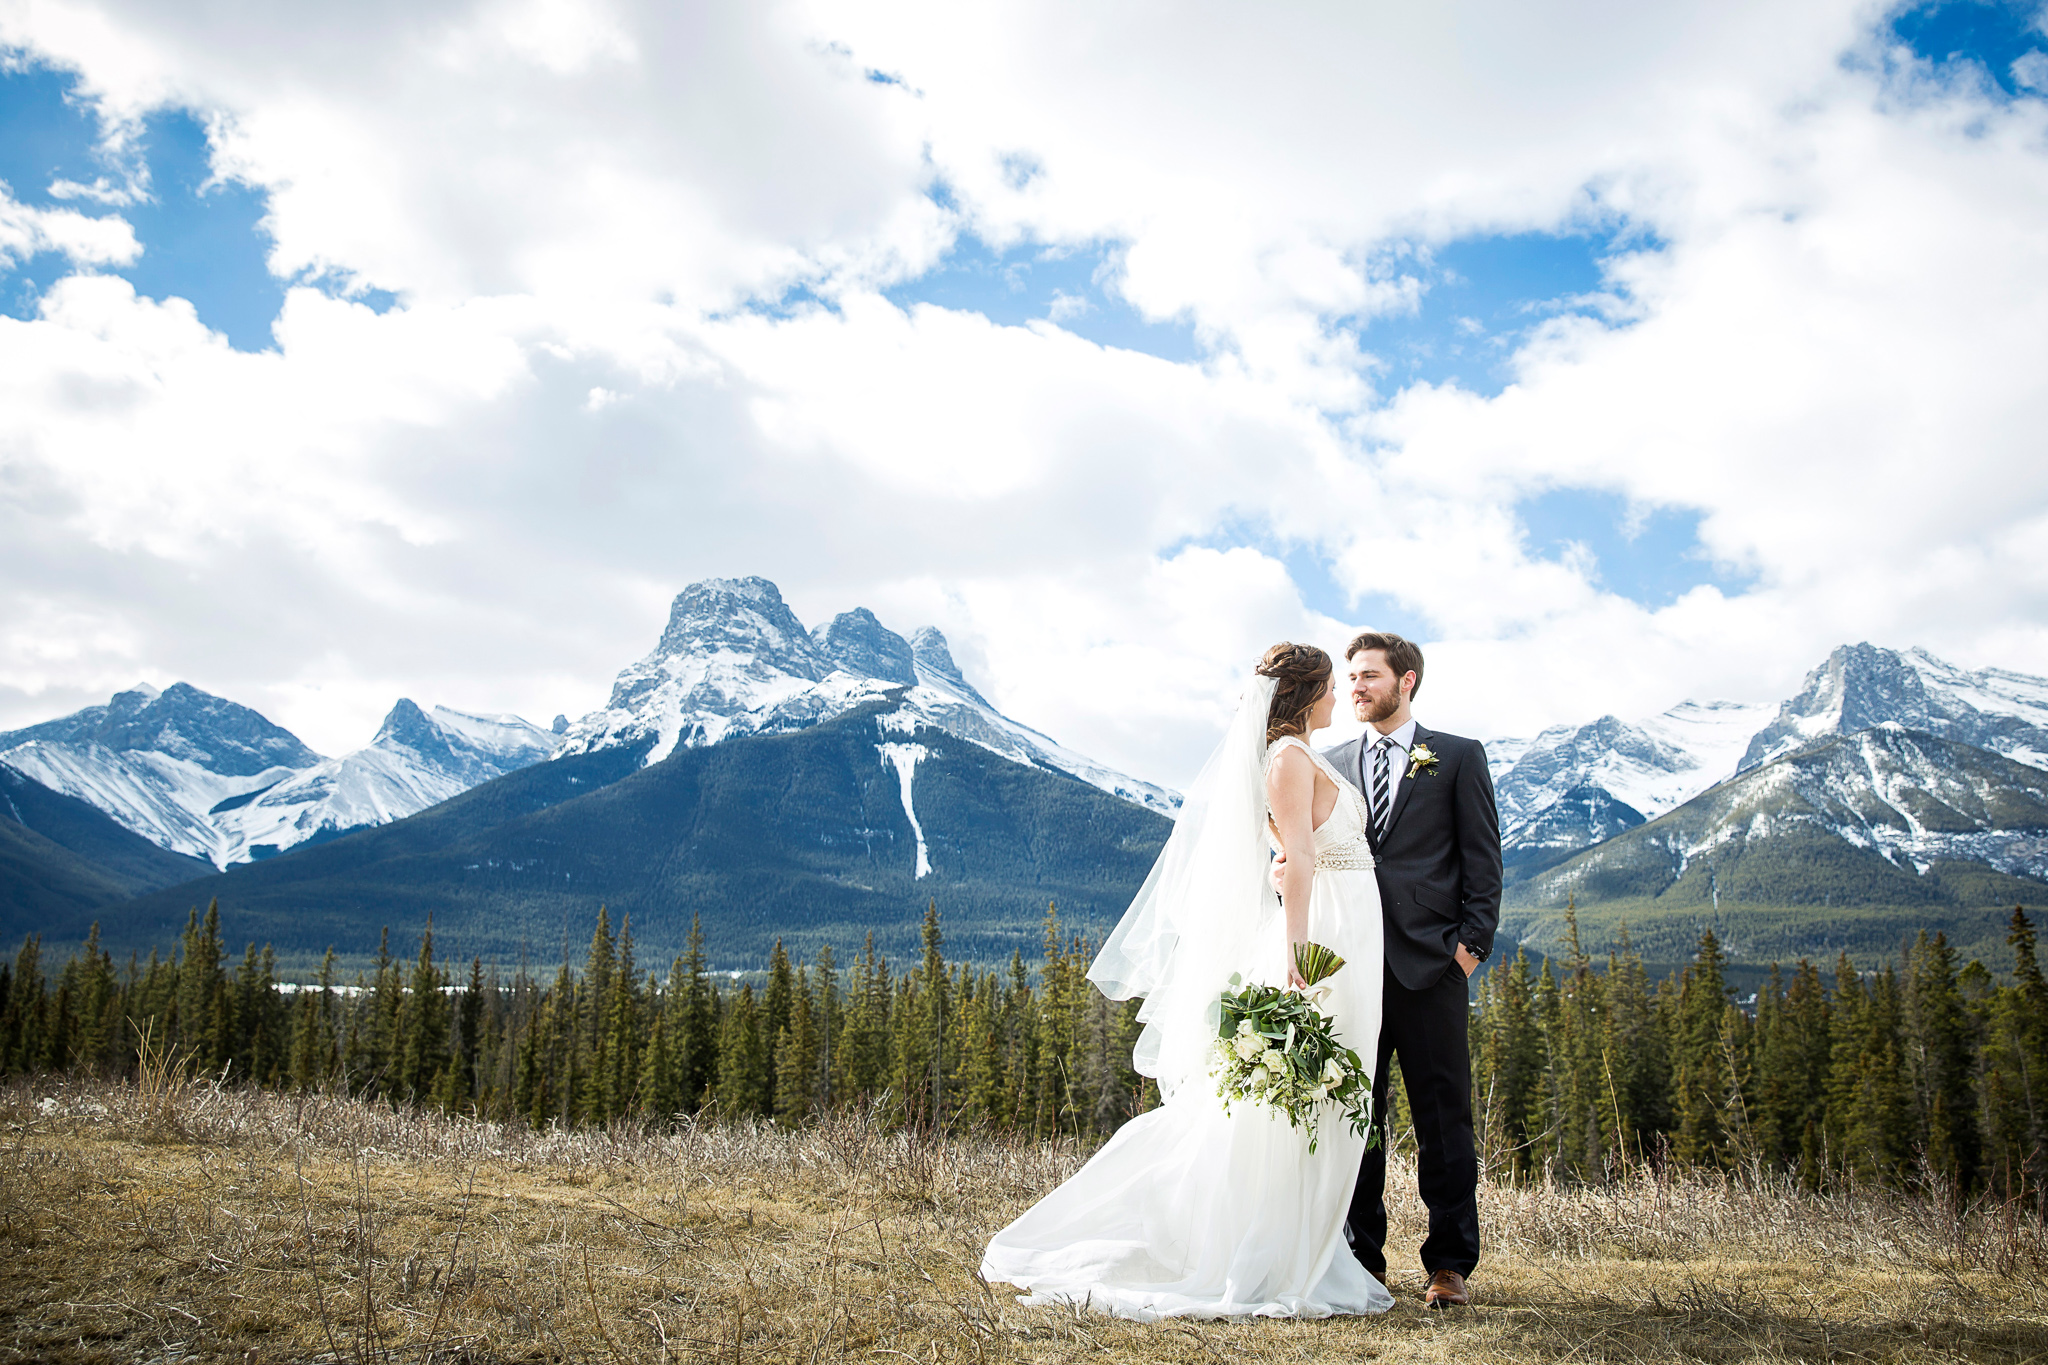 Canmore wedding from Naturally Chic Wedding Planning & Design | Photo Kim Payant Photography